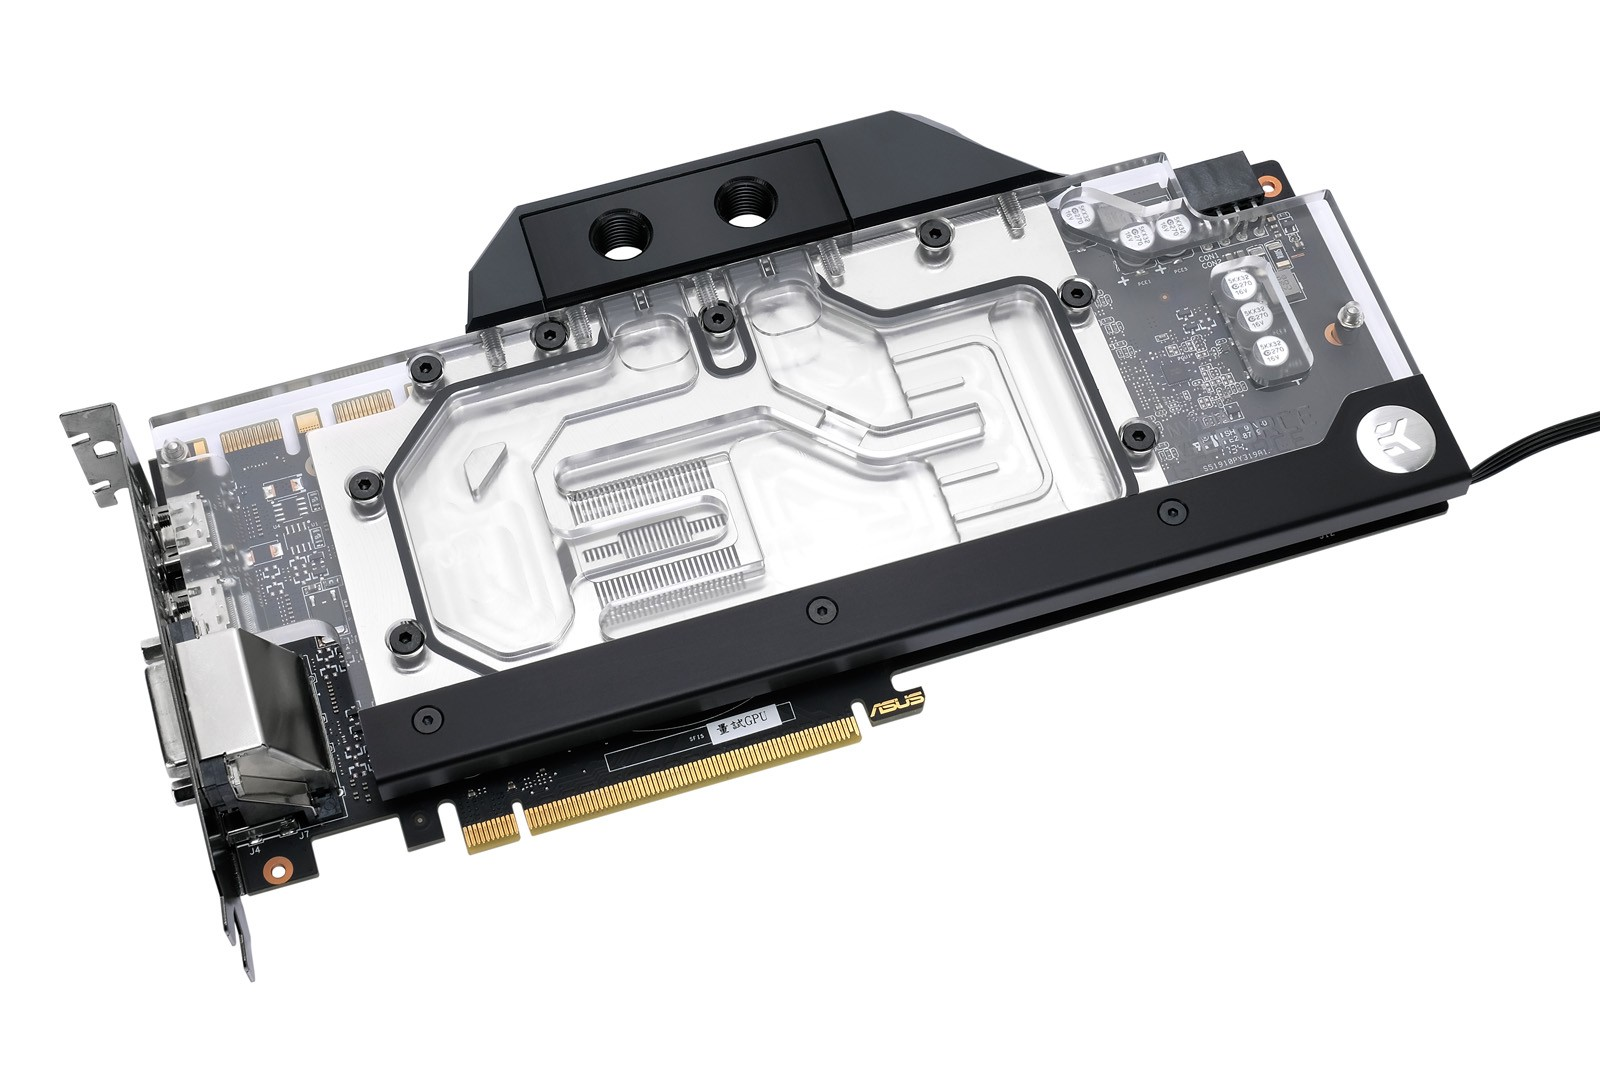 EK Water Blocks EK-FC1070 GTX Ti ASUS RGB - Nickel